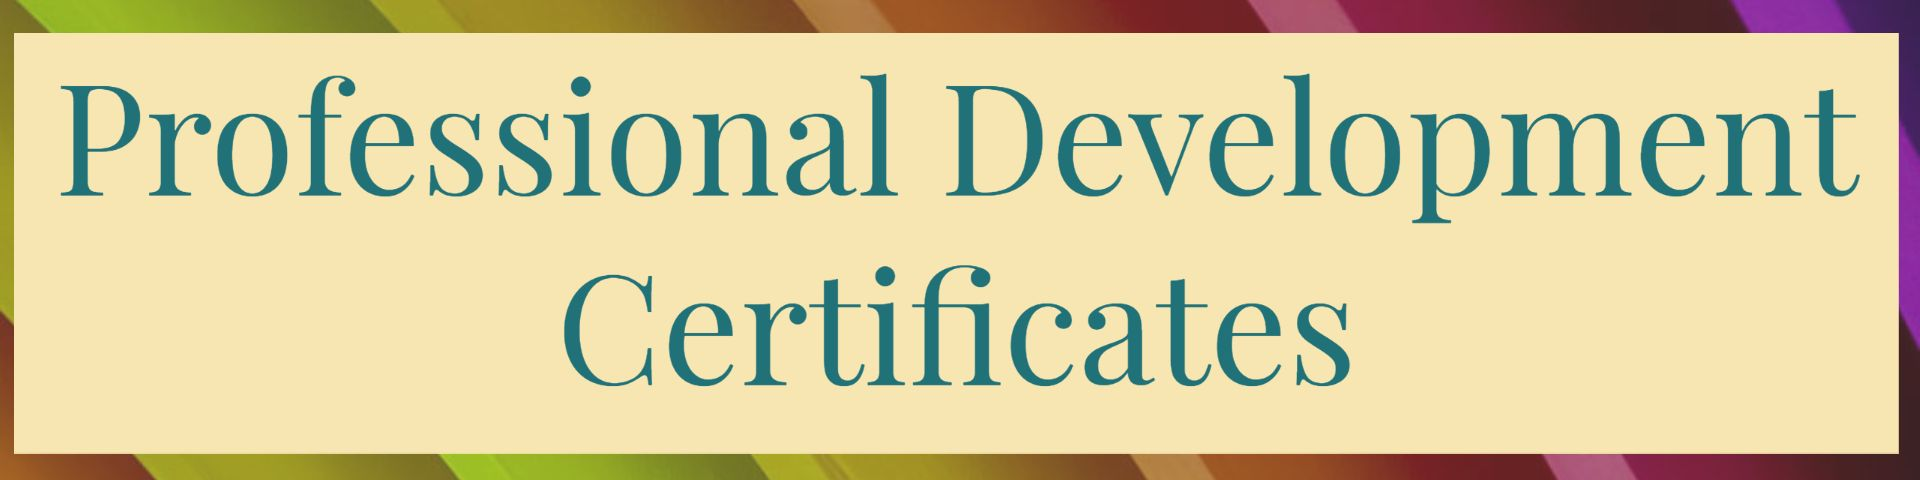 Professional Development Certificates